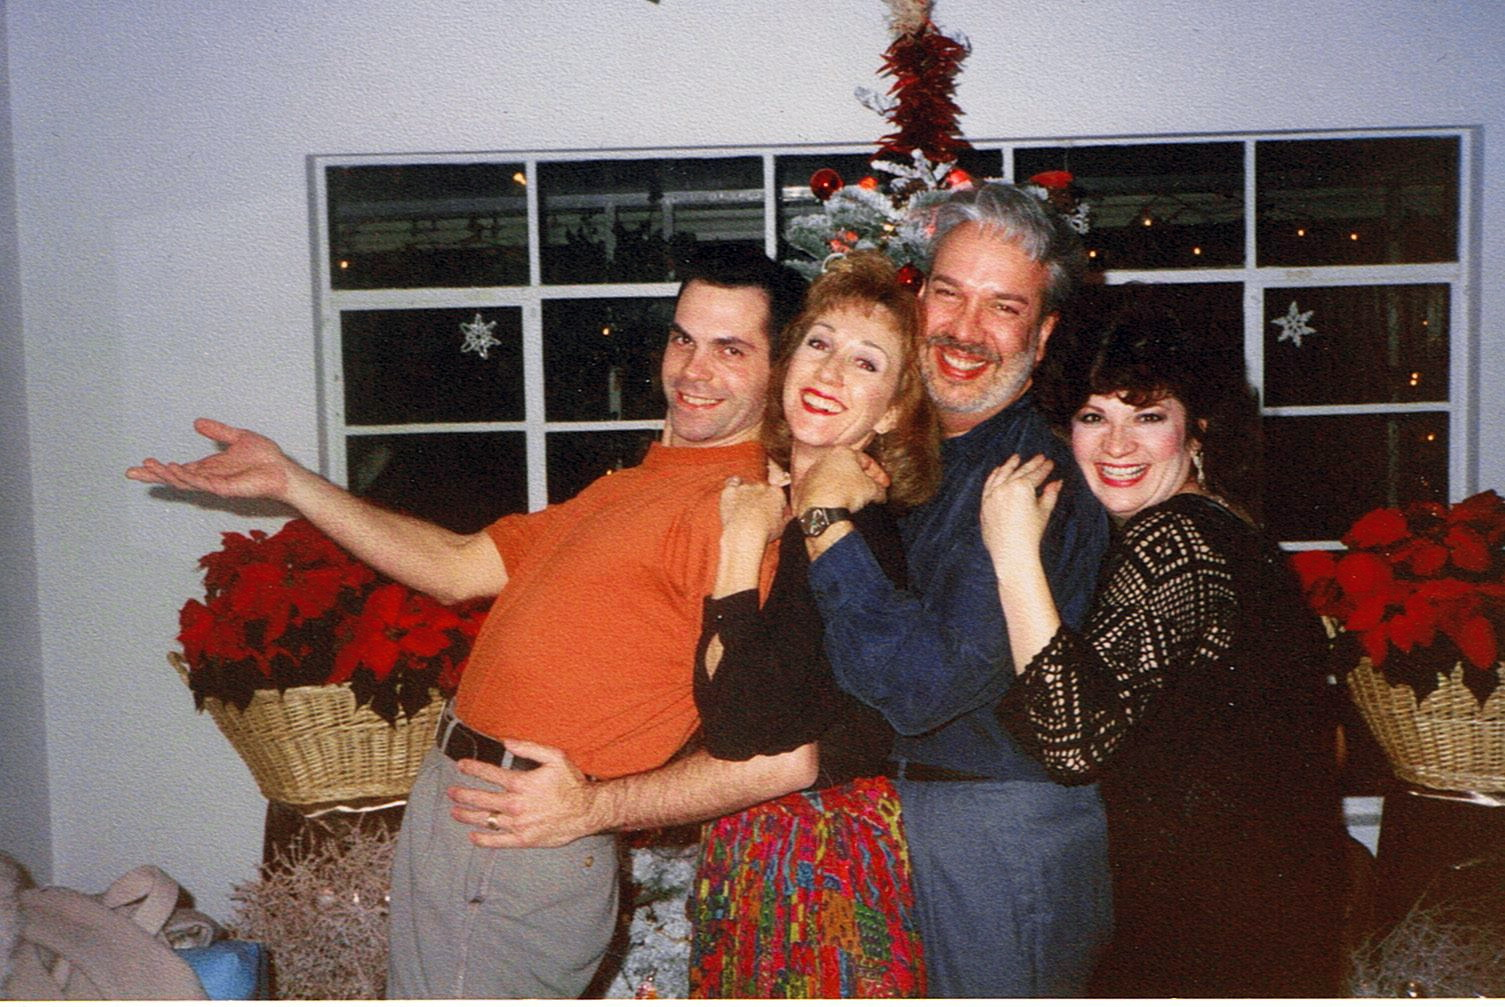 Hamming it up for the camera at a Christmas party back in the day. From left, Bobby Locke (Robert Locke), Linda DeArmond, Jerry Wayne Harkey and Robyn Ferracane.